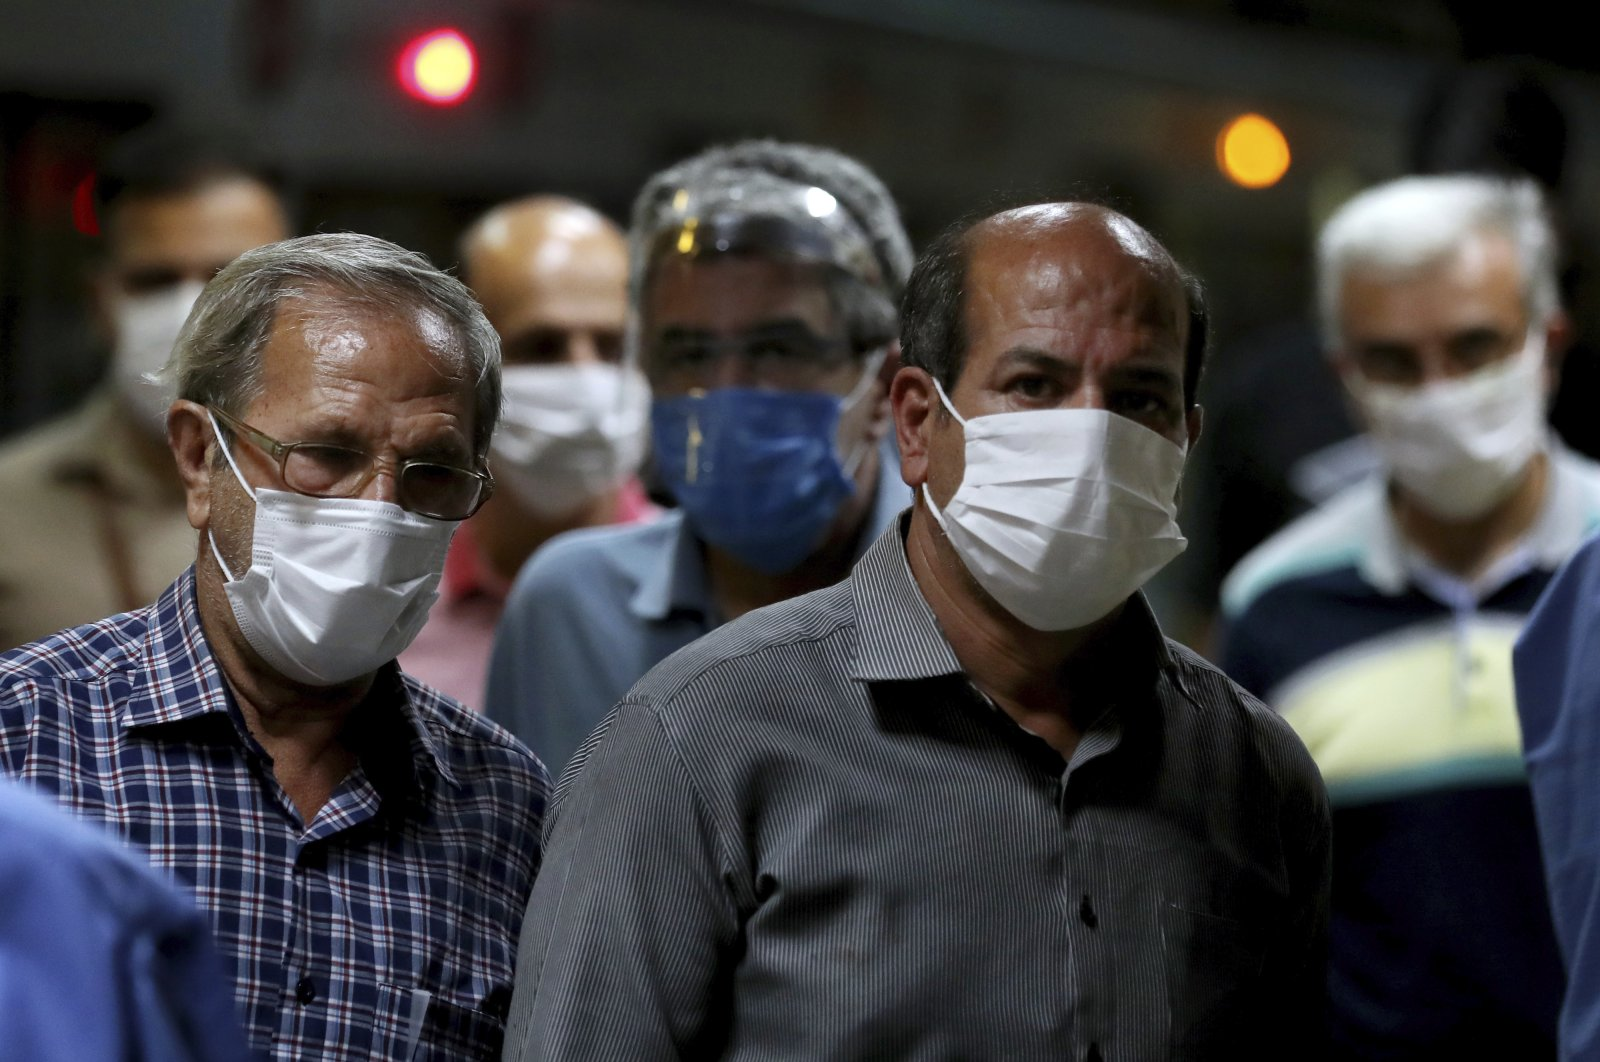 People wearing protective face masks to help prevent the spread of the coronavirus walk in a metro station, in Tehran, Iran, July 8, 2020. (AP Photo)